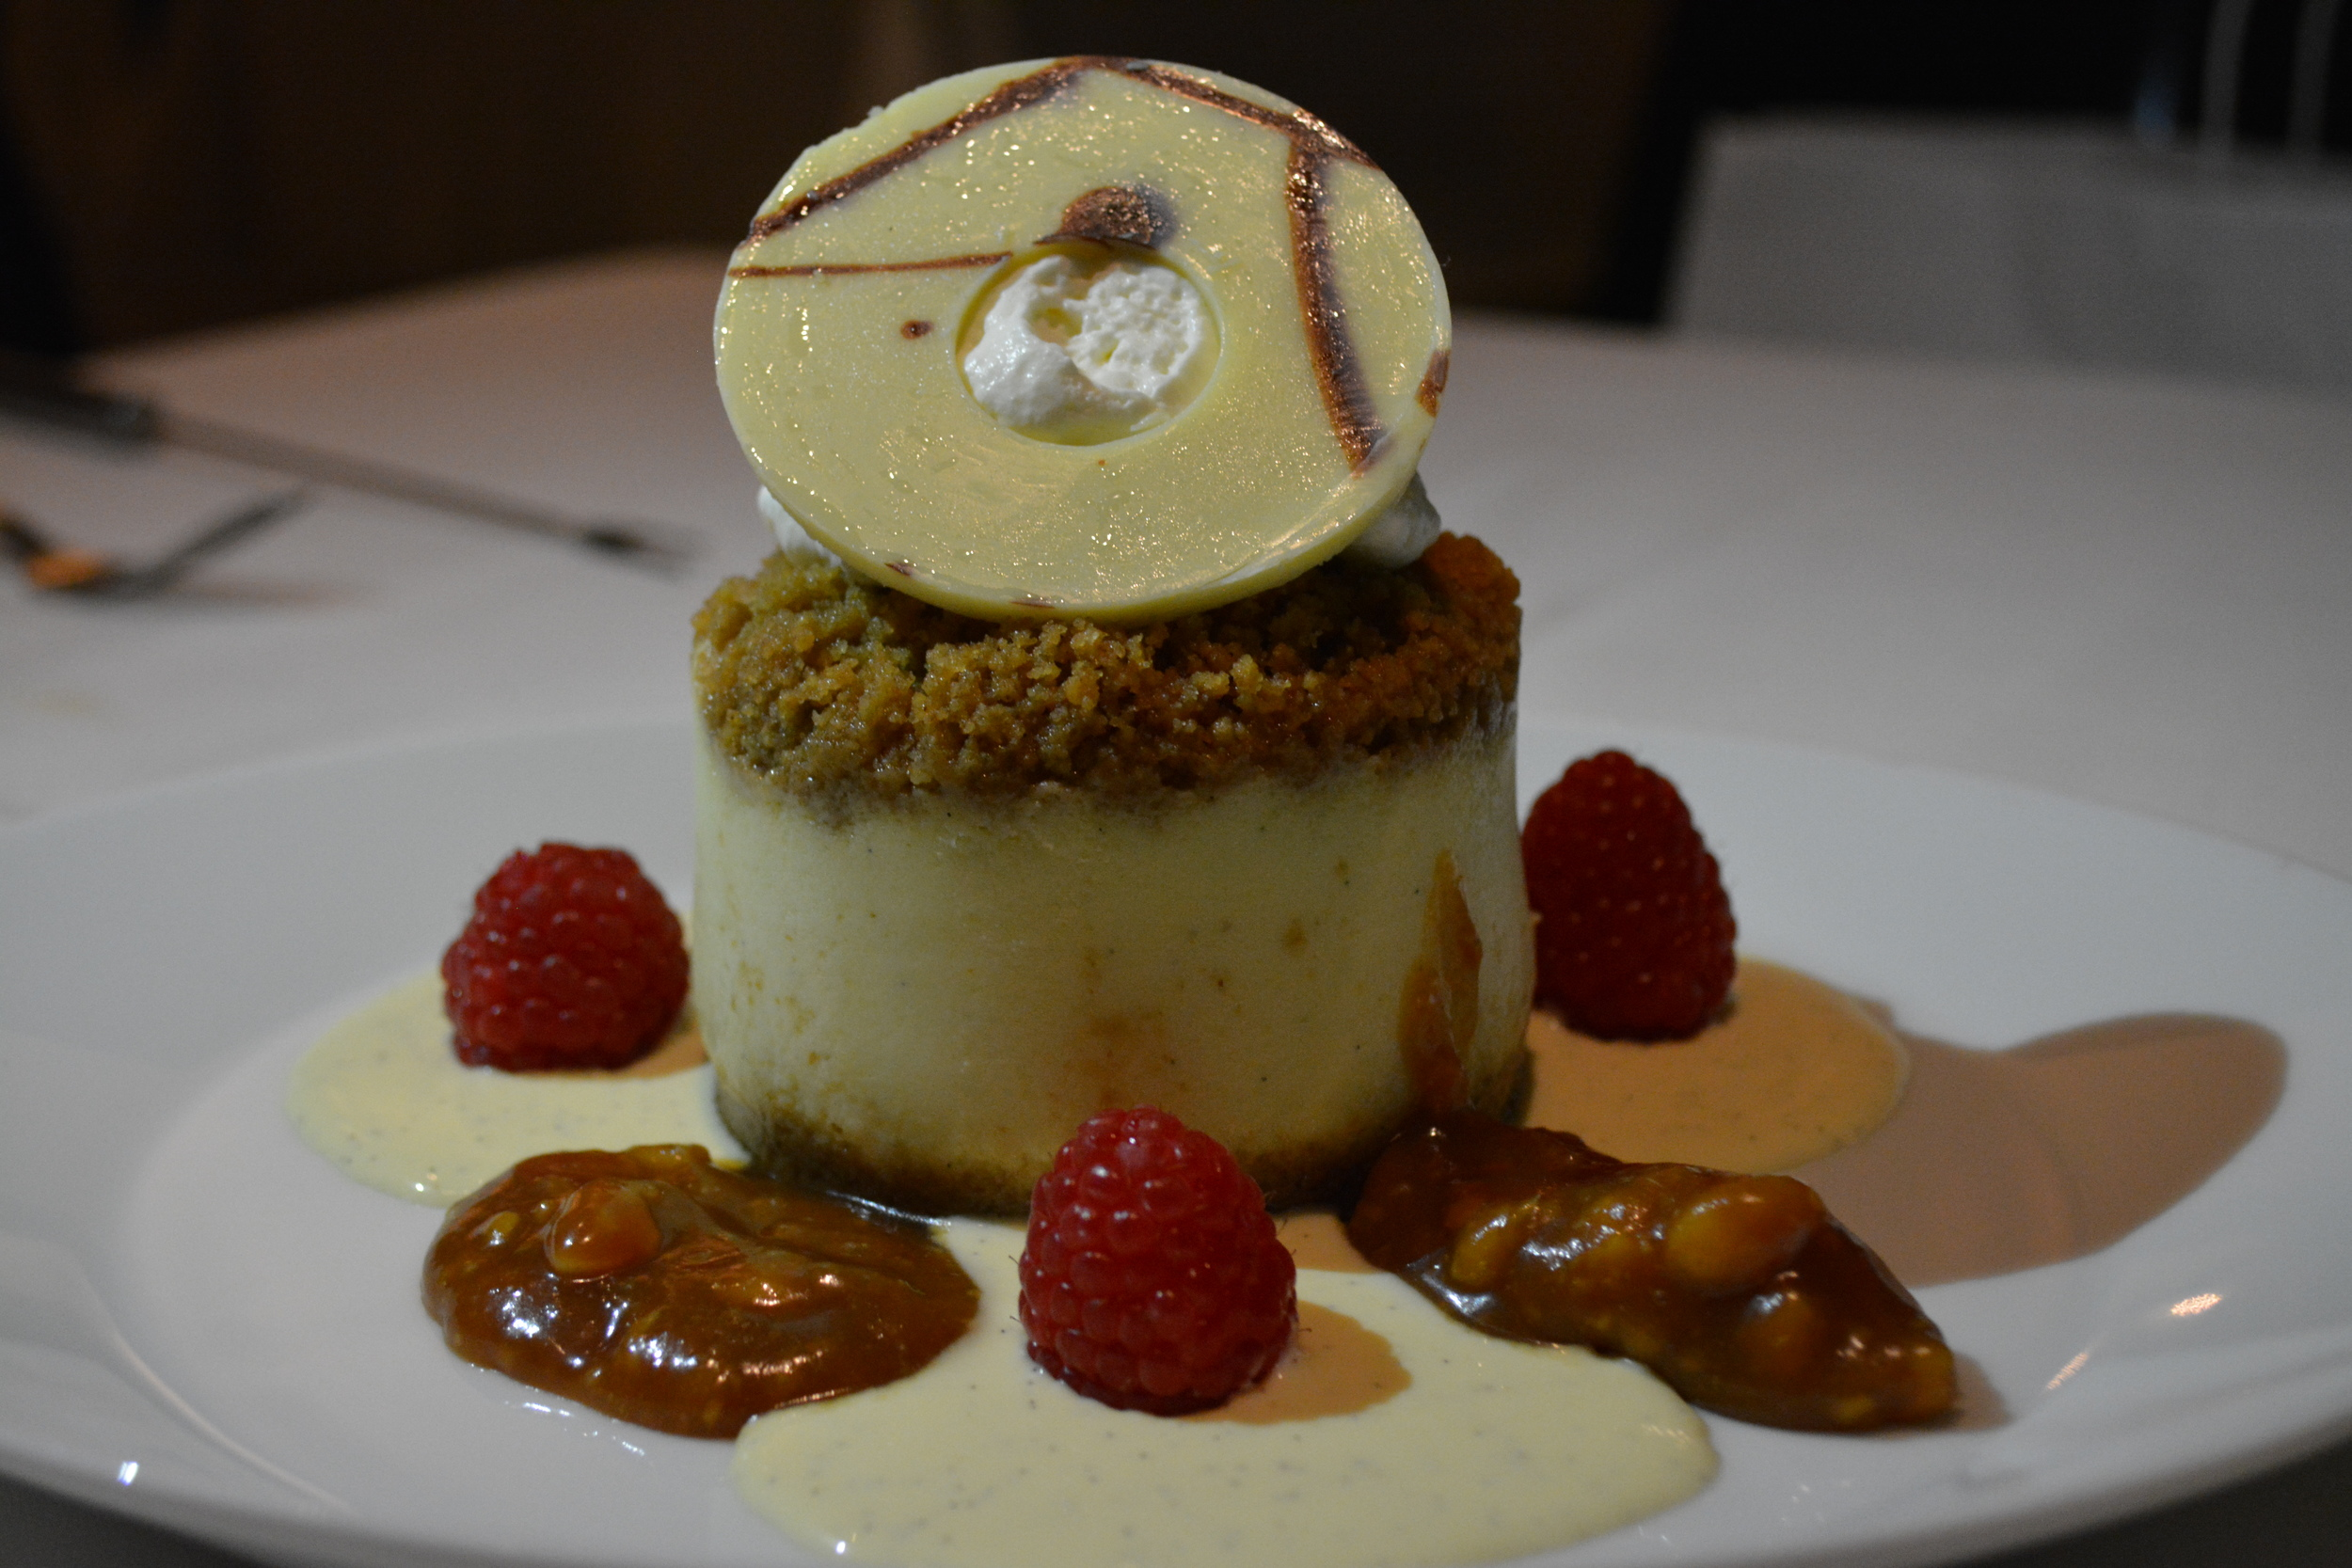 Prime's delicious cheesecake dessert item, mentioned above.